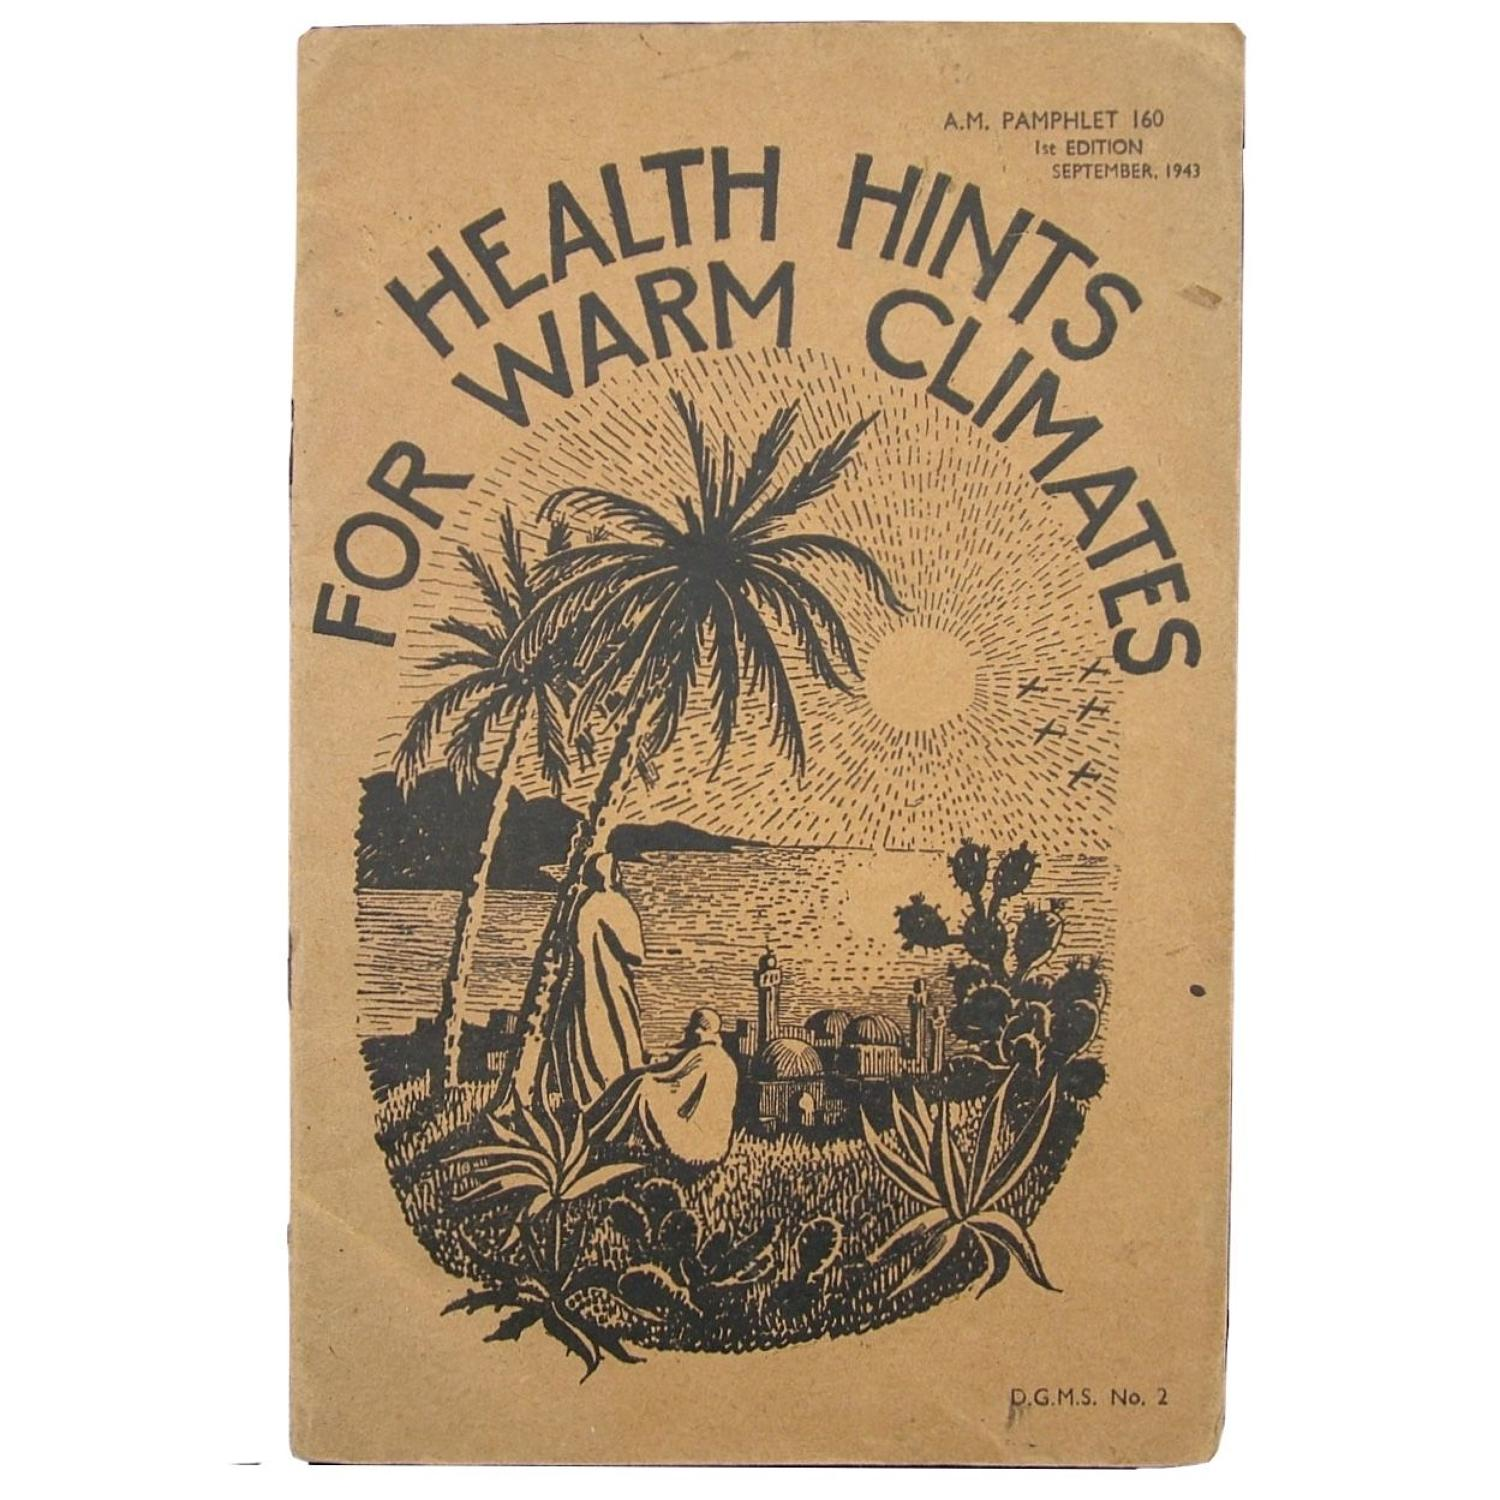 Air Ministry Pamphlet - Health Hints for Warm Climates